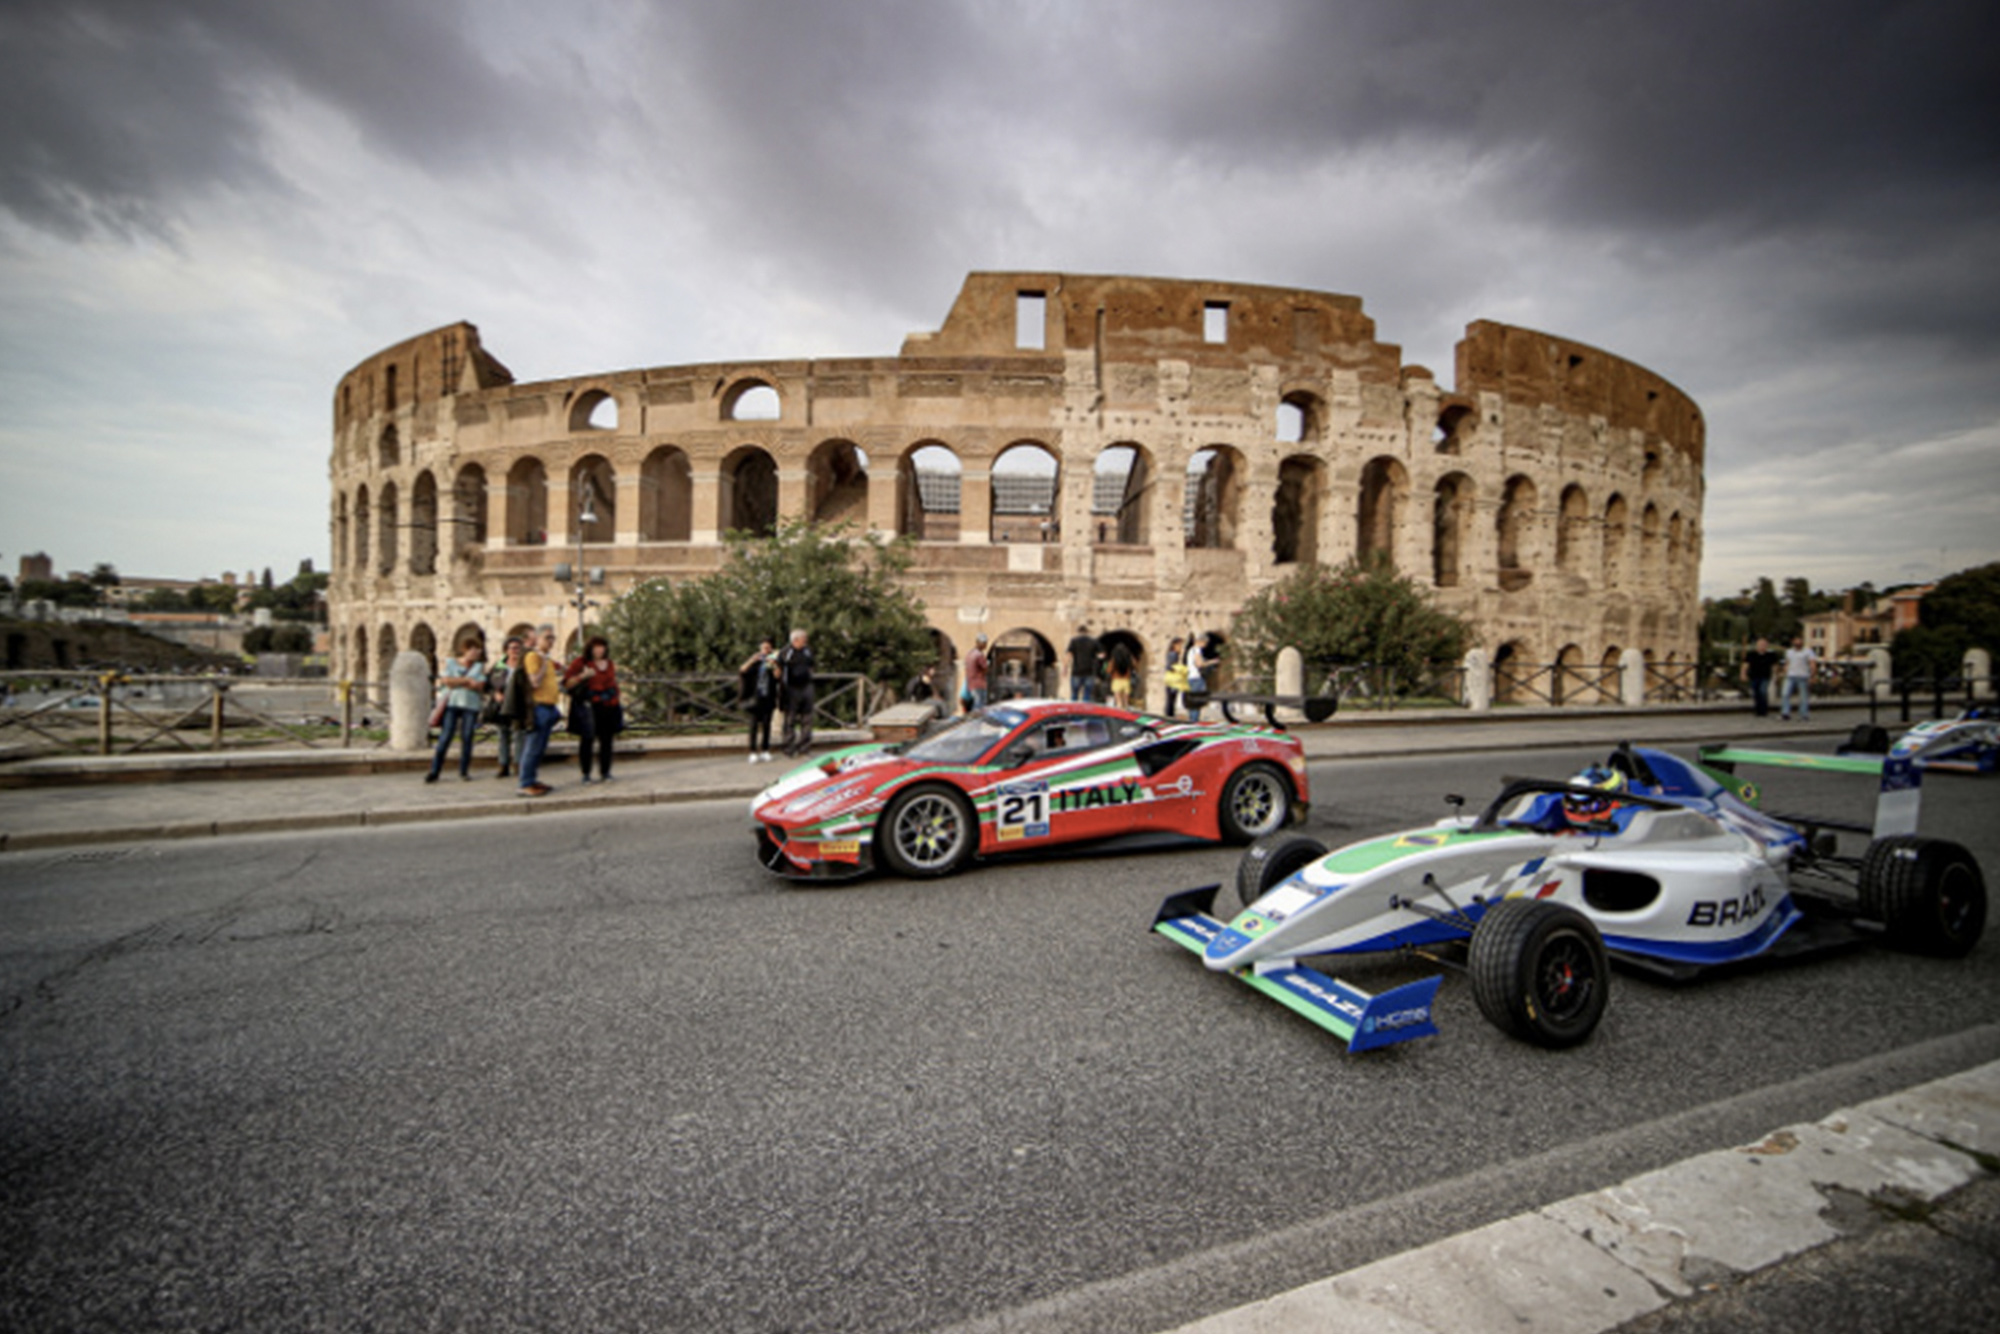 A single-seater and GT car drives in front of Rome's Colosseum ahead of the 2019 Motorsport Games